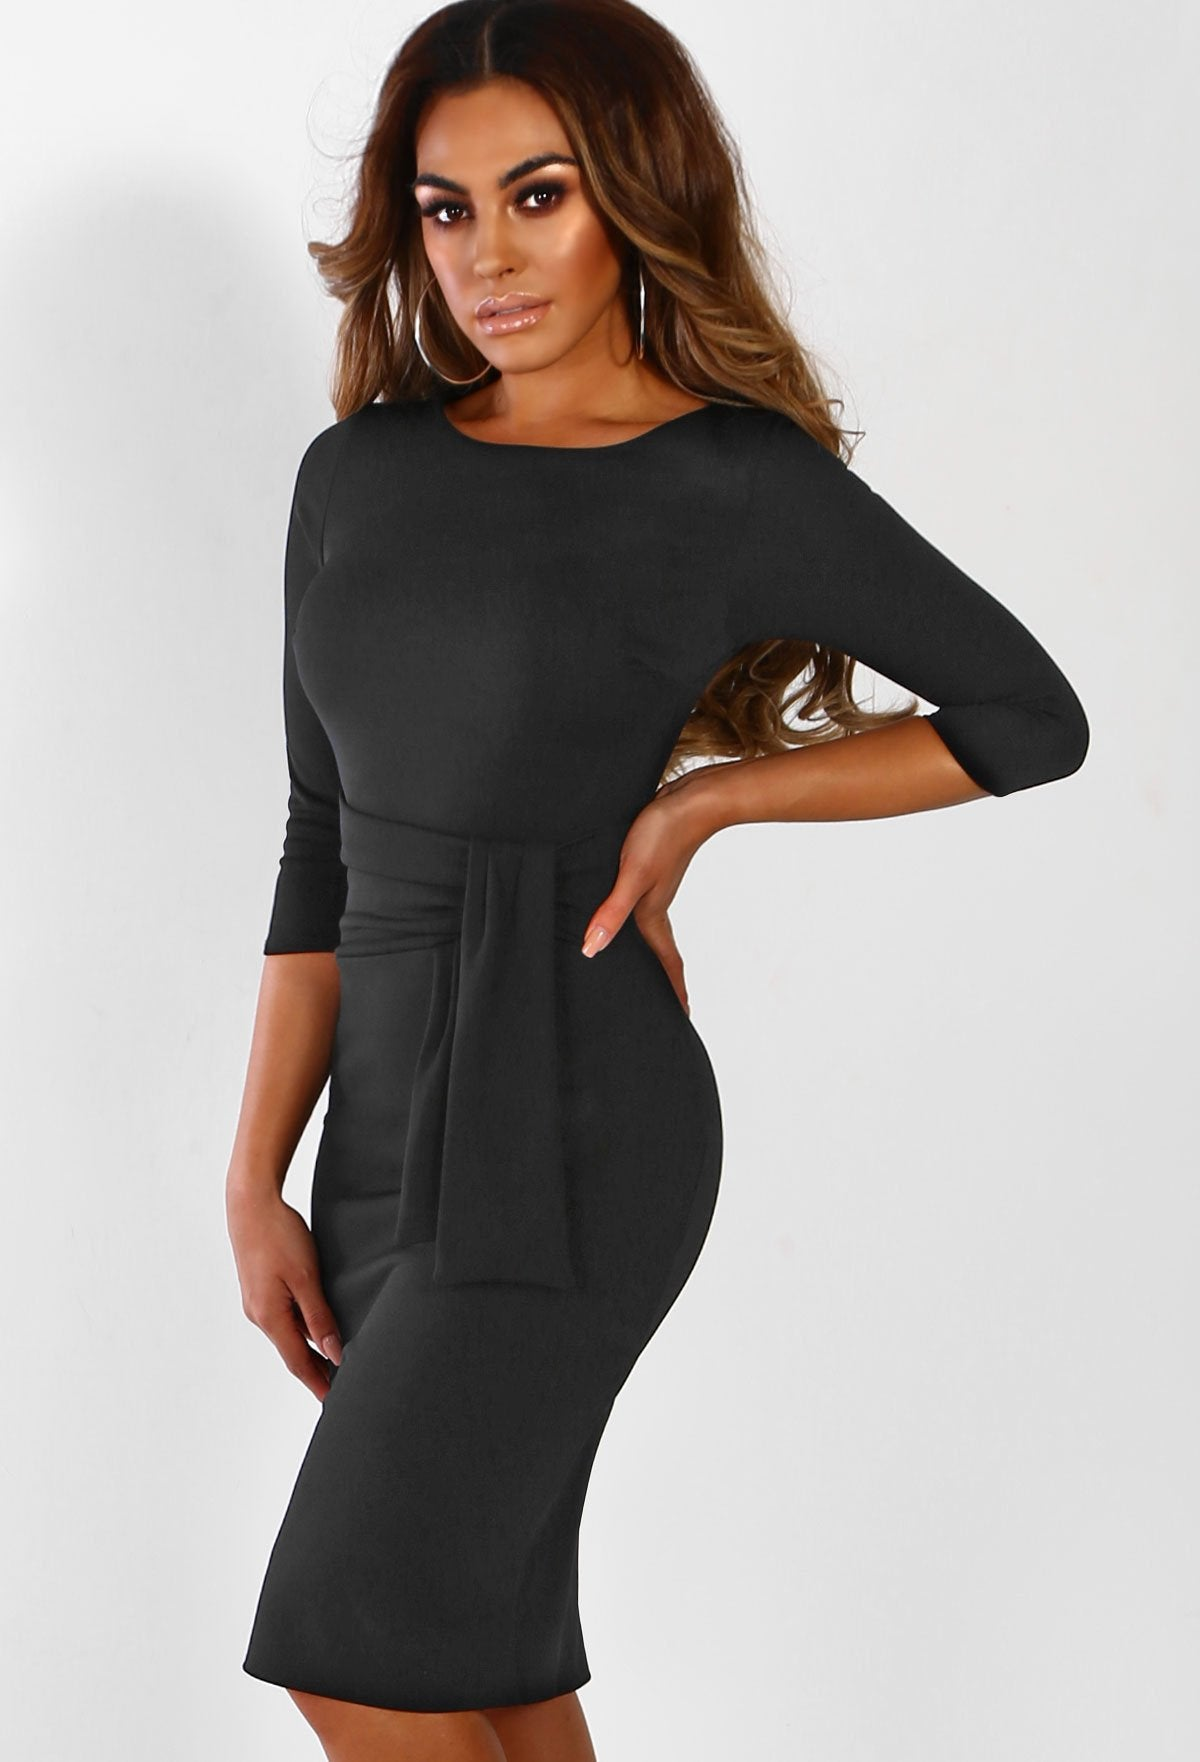 7f4fab916c23e Fool For You Black Belted Bodycon Midi Dress – Pink Boutique UK